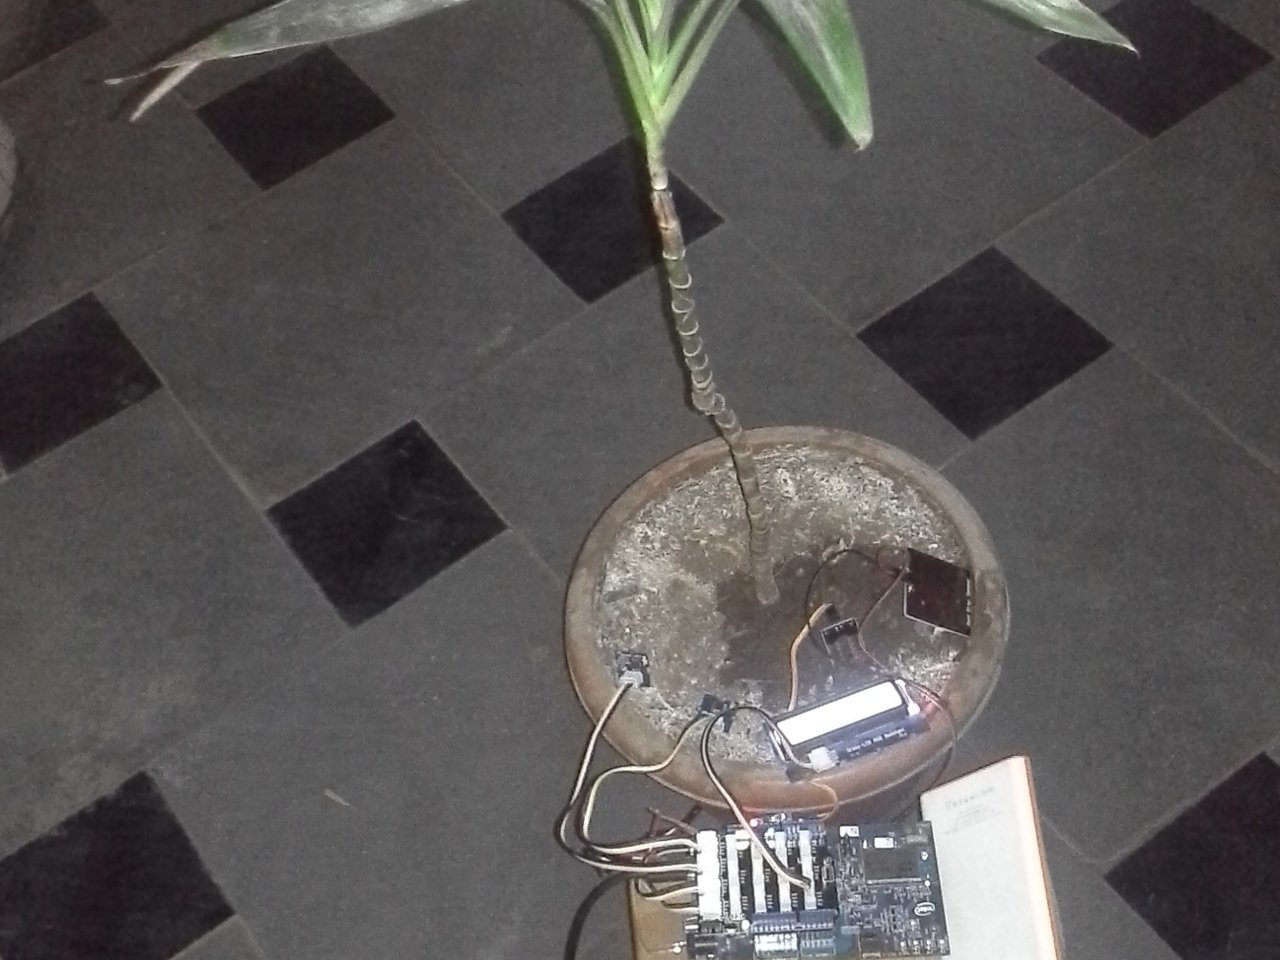 Intel Edison powered IoT home plant monitoring and water control system